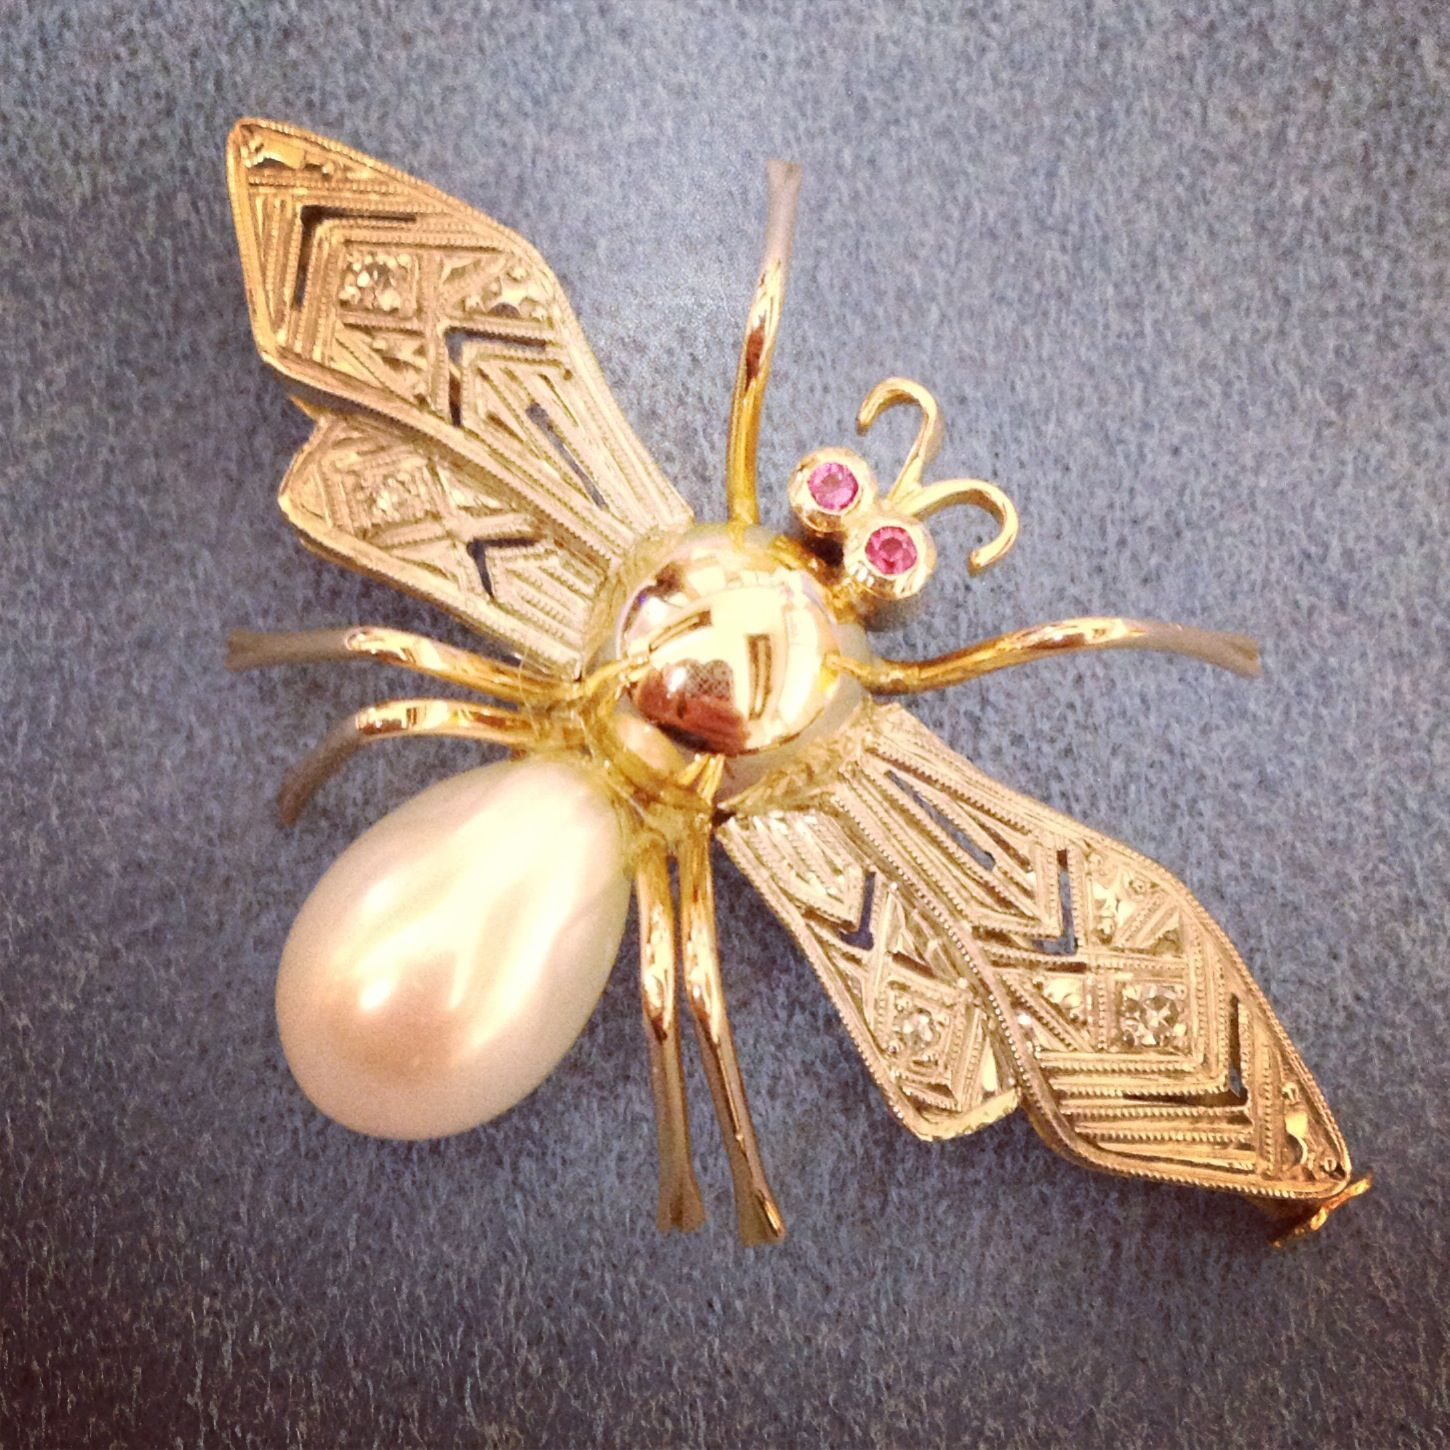 How cute is this little guy! Love the late #artdeco / #retro details #itsabugslife #instajewels photo by perrysjewelry